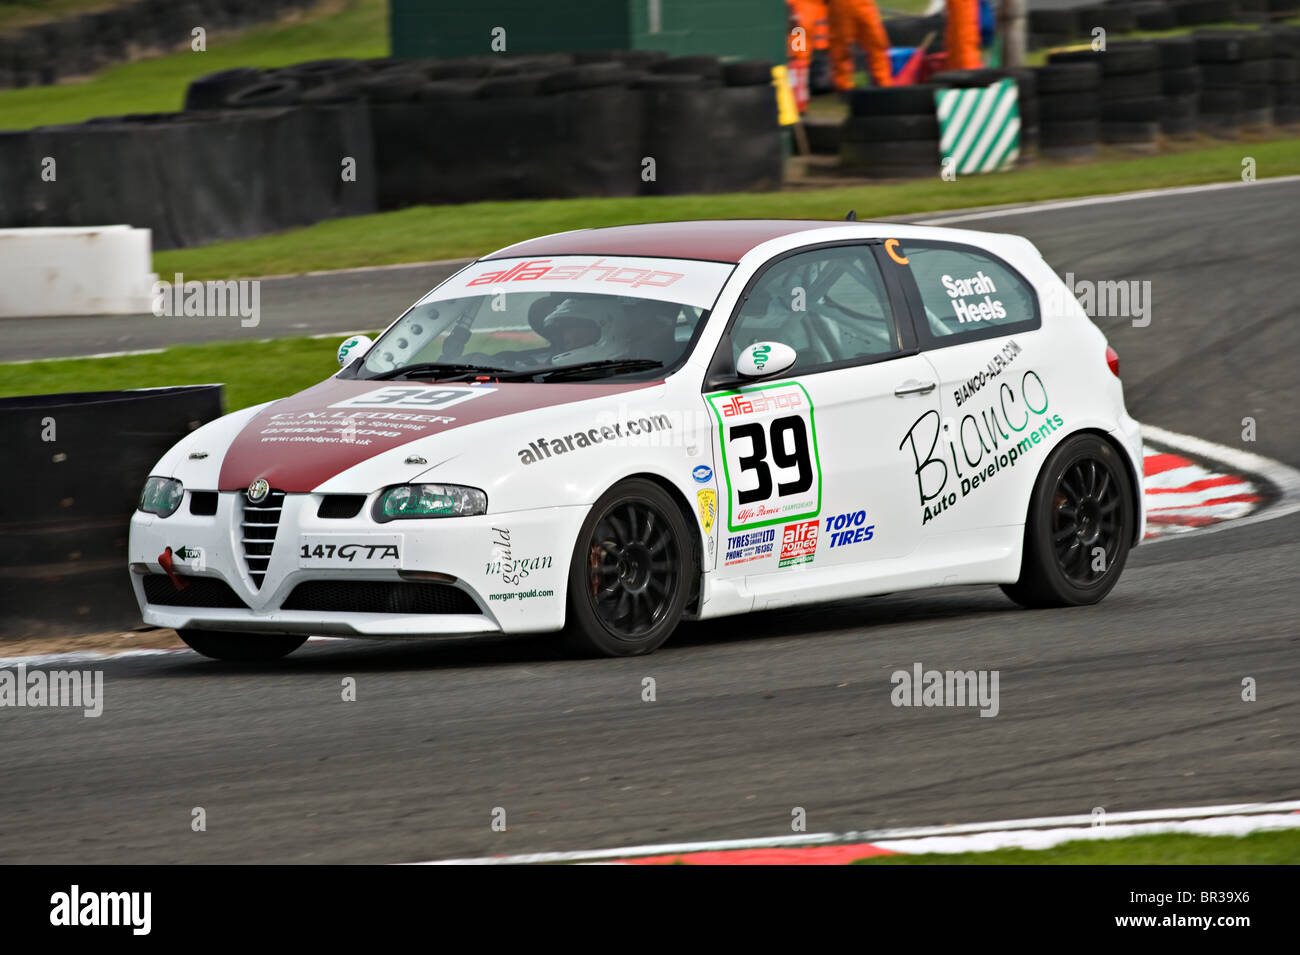 hight resolution of alfashop alfa romeo 147 gta race car at oulton park motor racing circuit cheshire england united